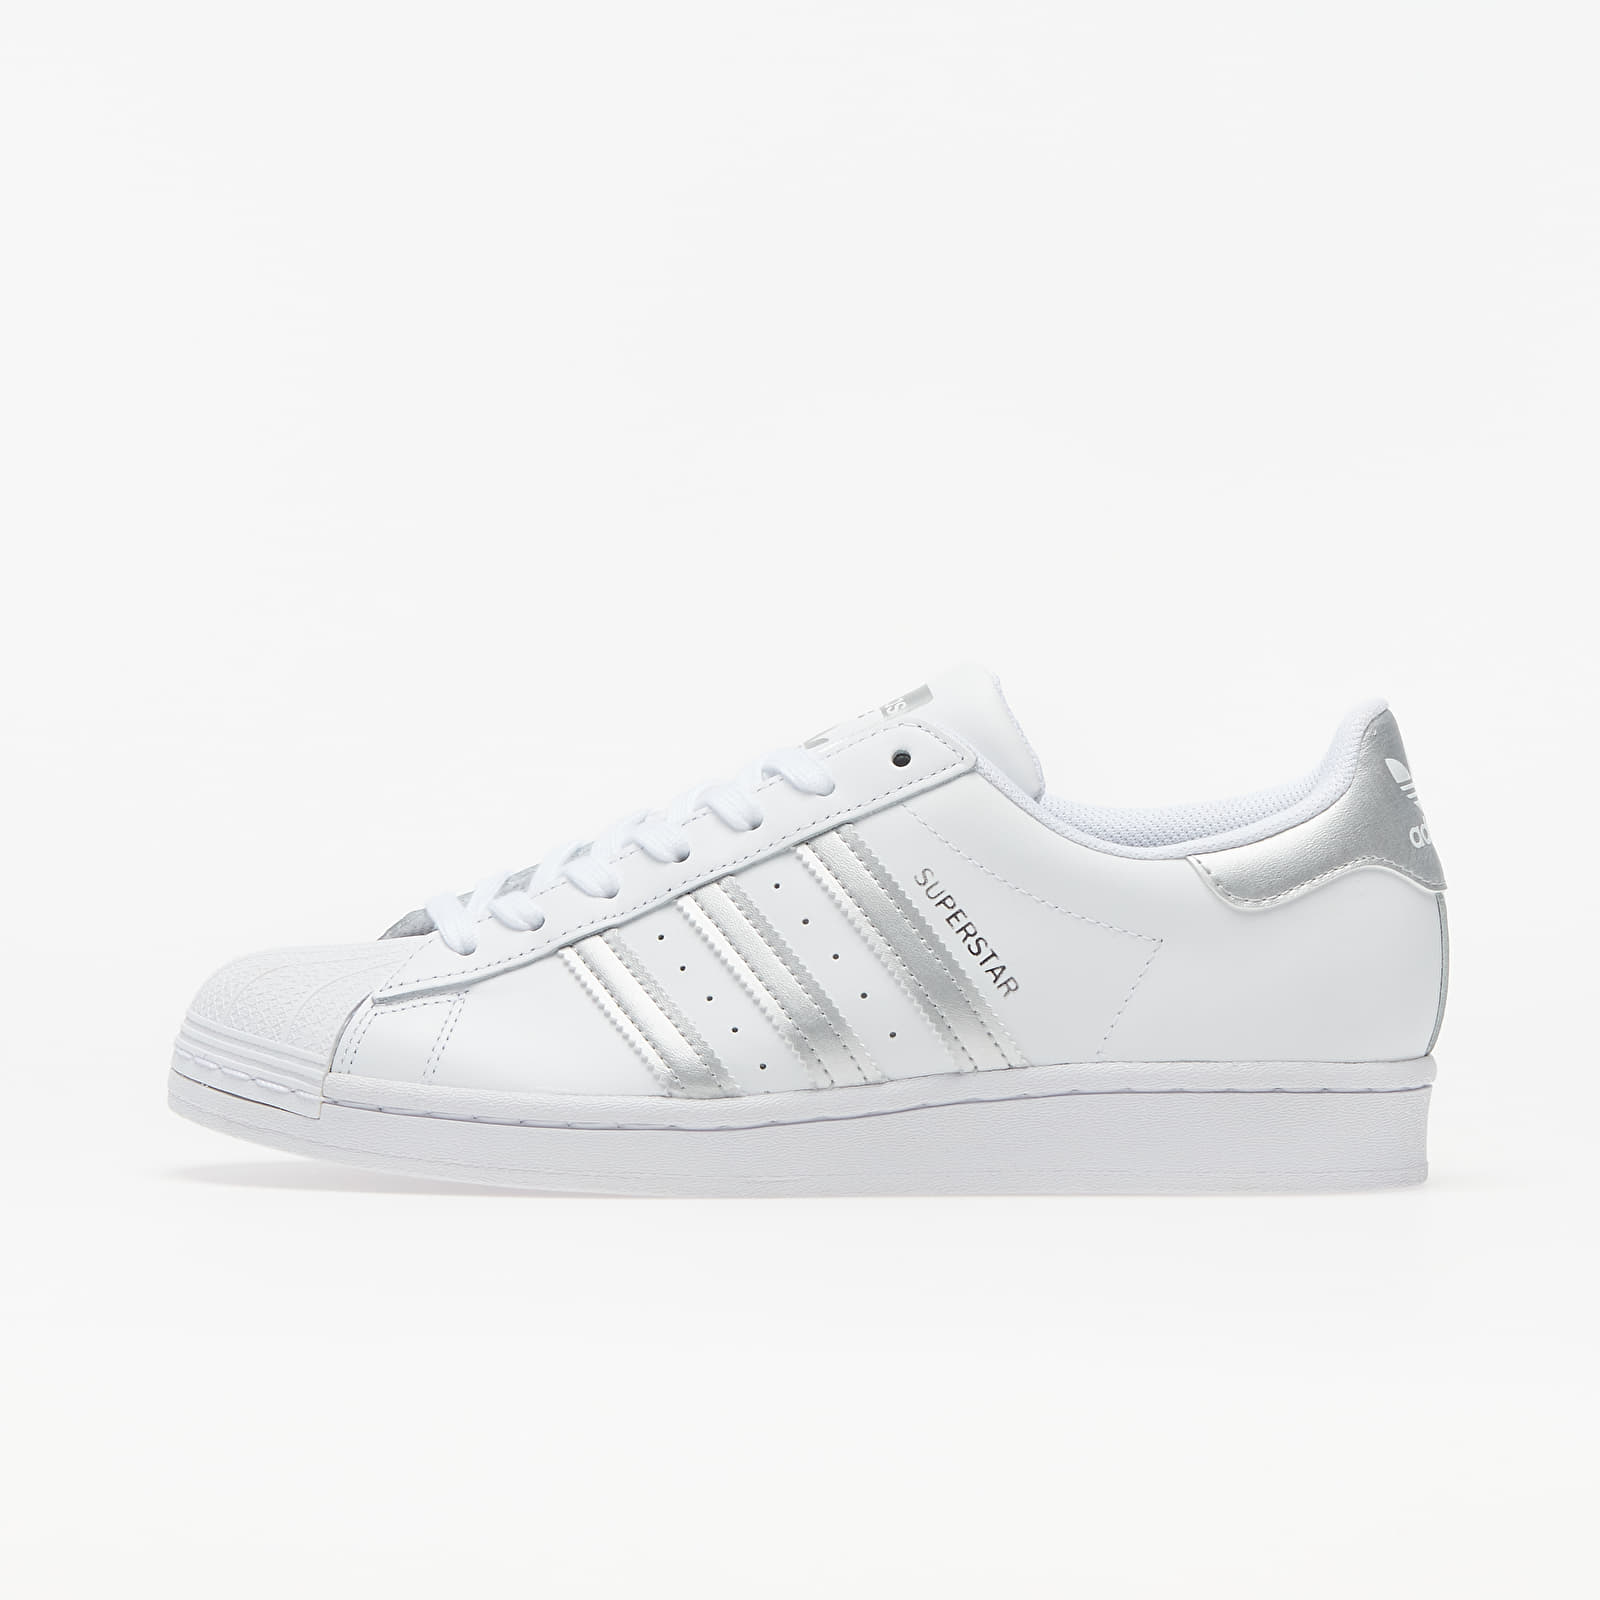 adidas Superstar Ftw White/ Silver Metalic/ Ftw White EUR 41 1/3